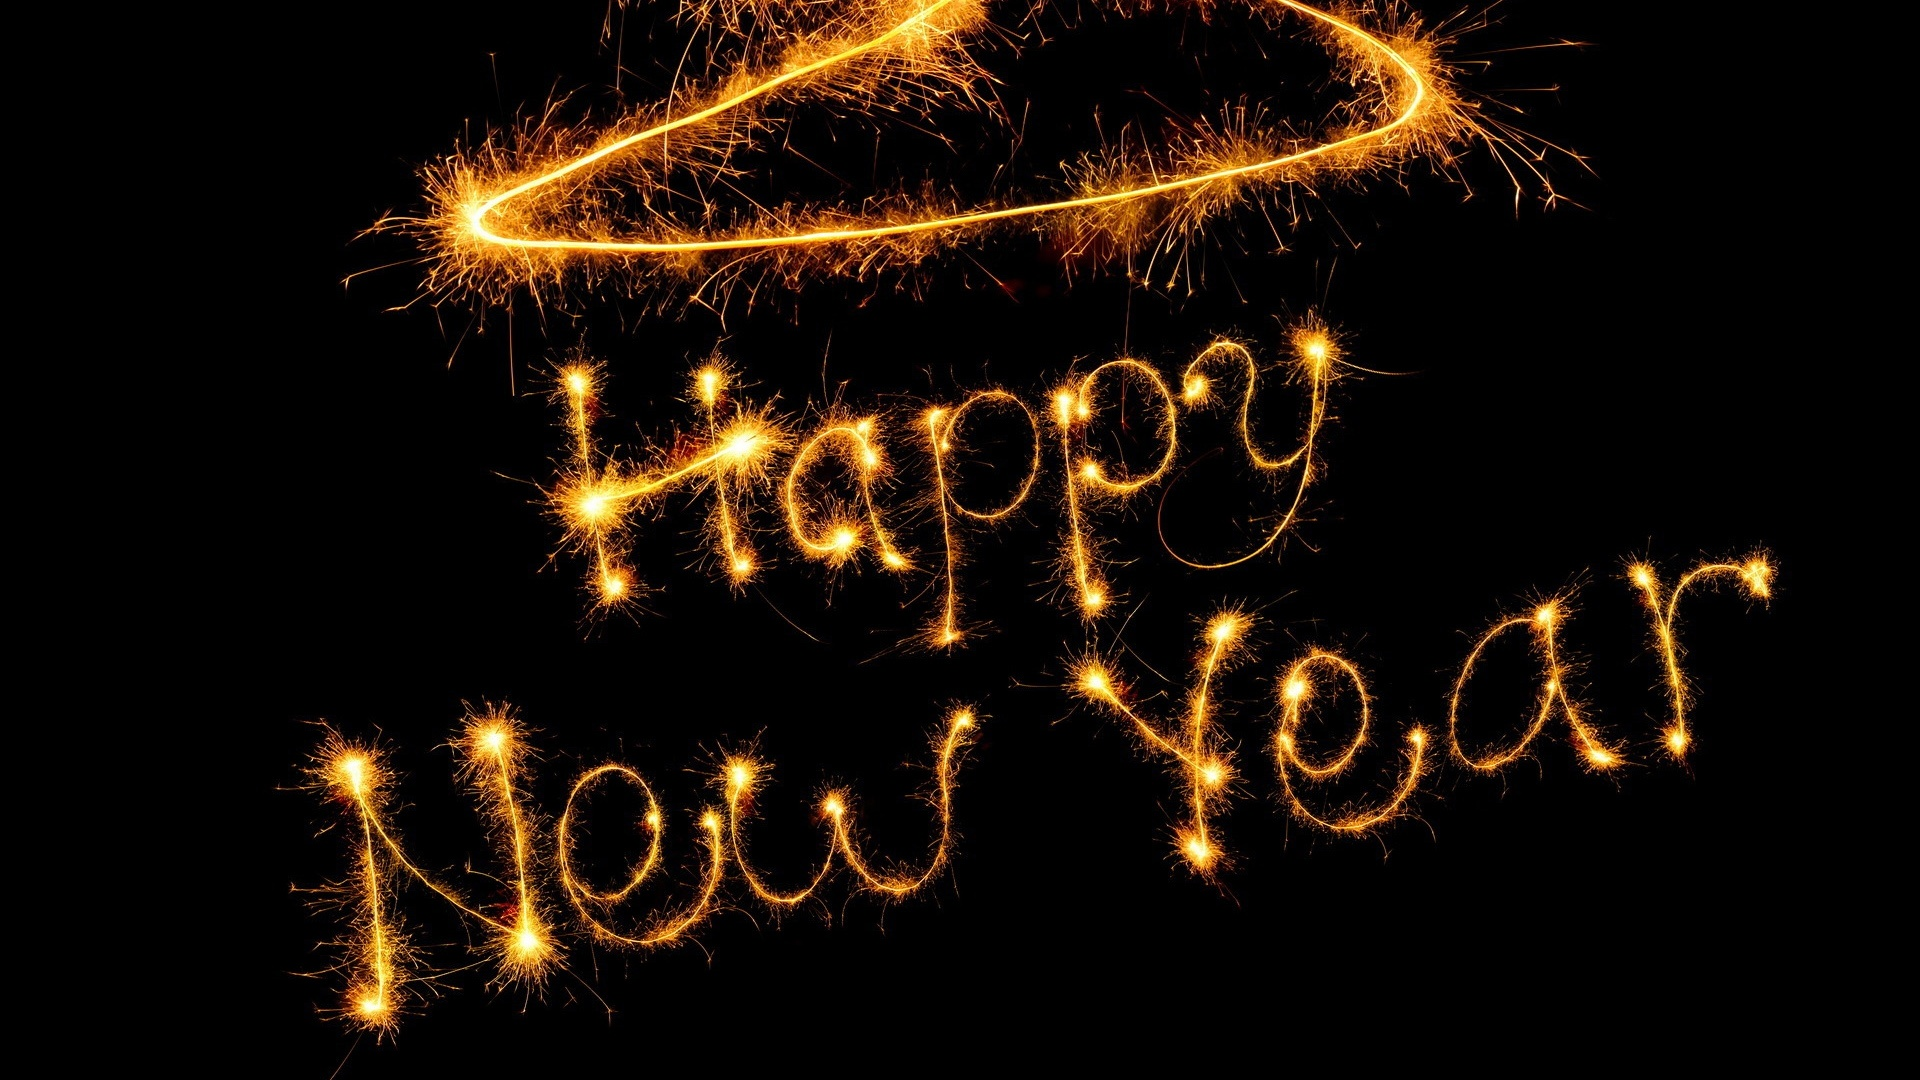 happy new year 2014 images and desktop background in 19201080 px resolution id3972